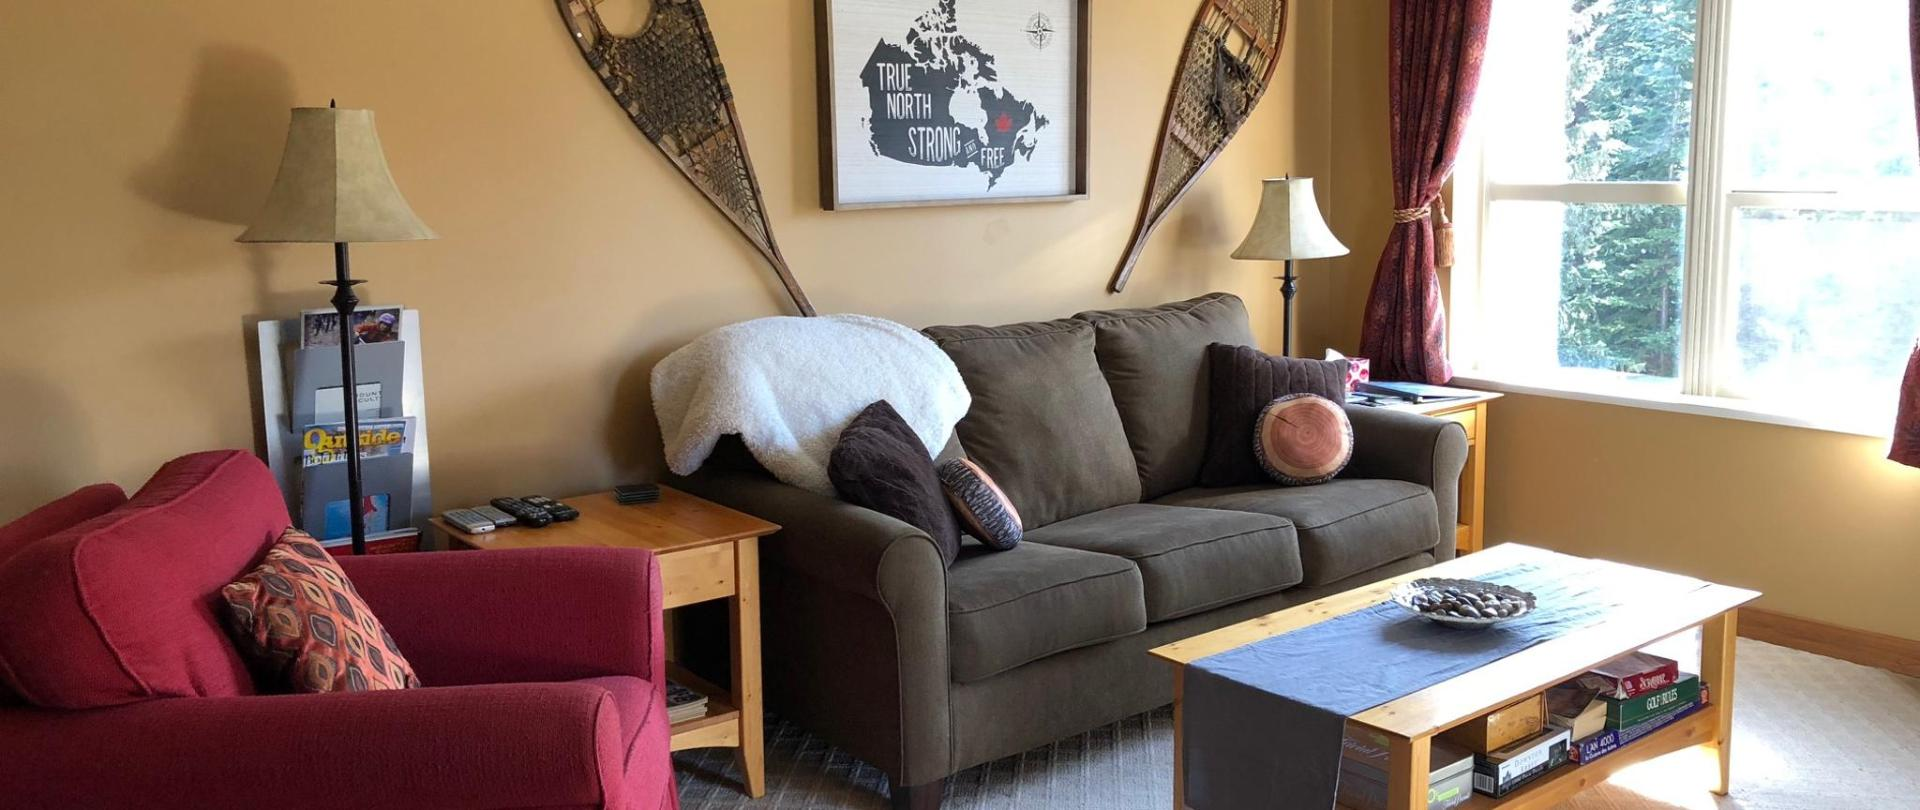 Living Room - Pullout Couch.jpg